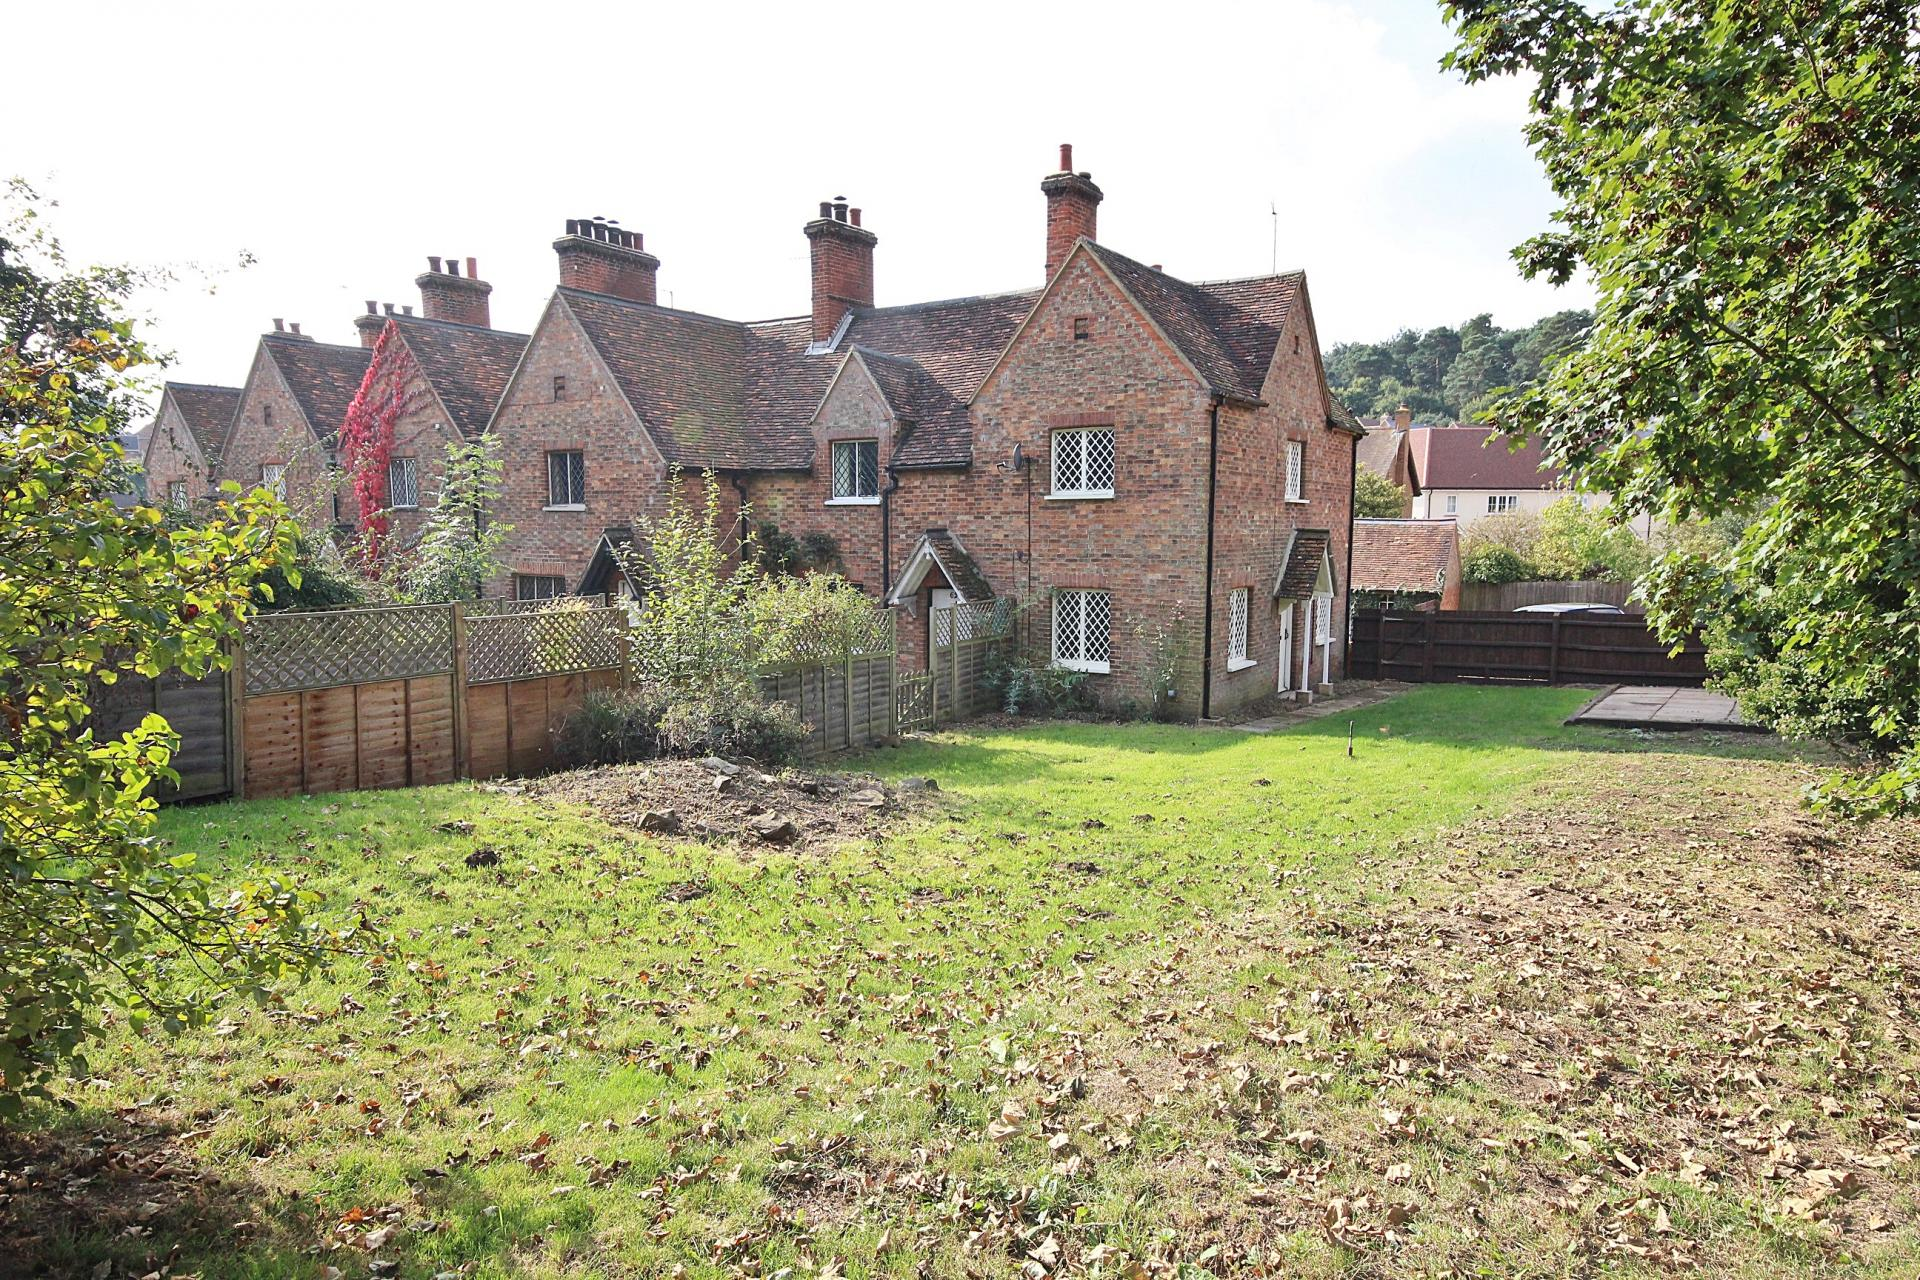 2 bedroom house for rent in ampthill for How much is a bedroom worth in an appraisal